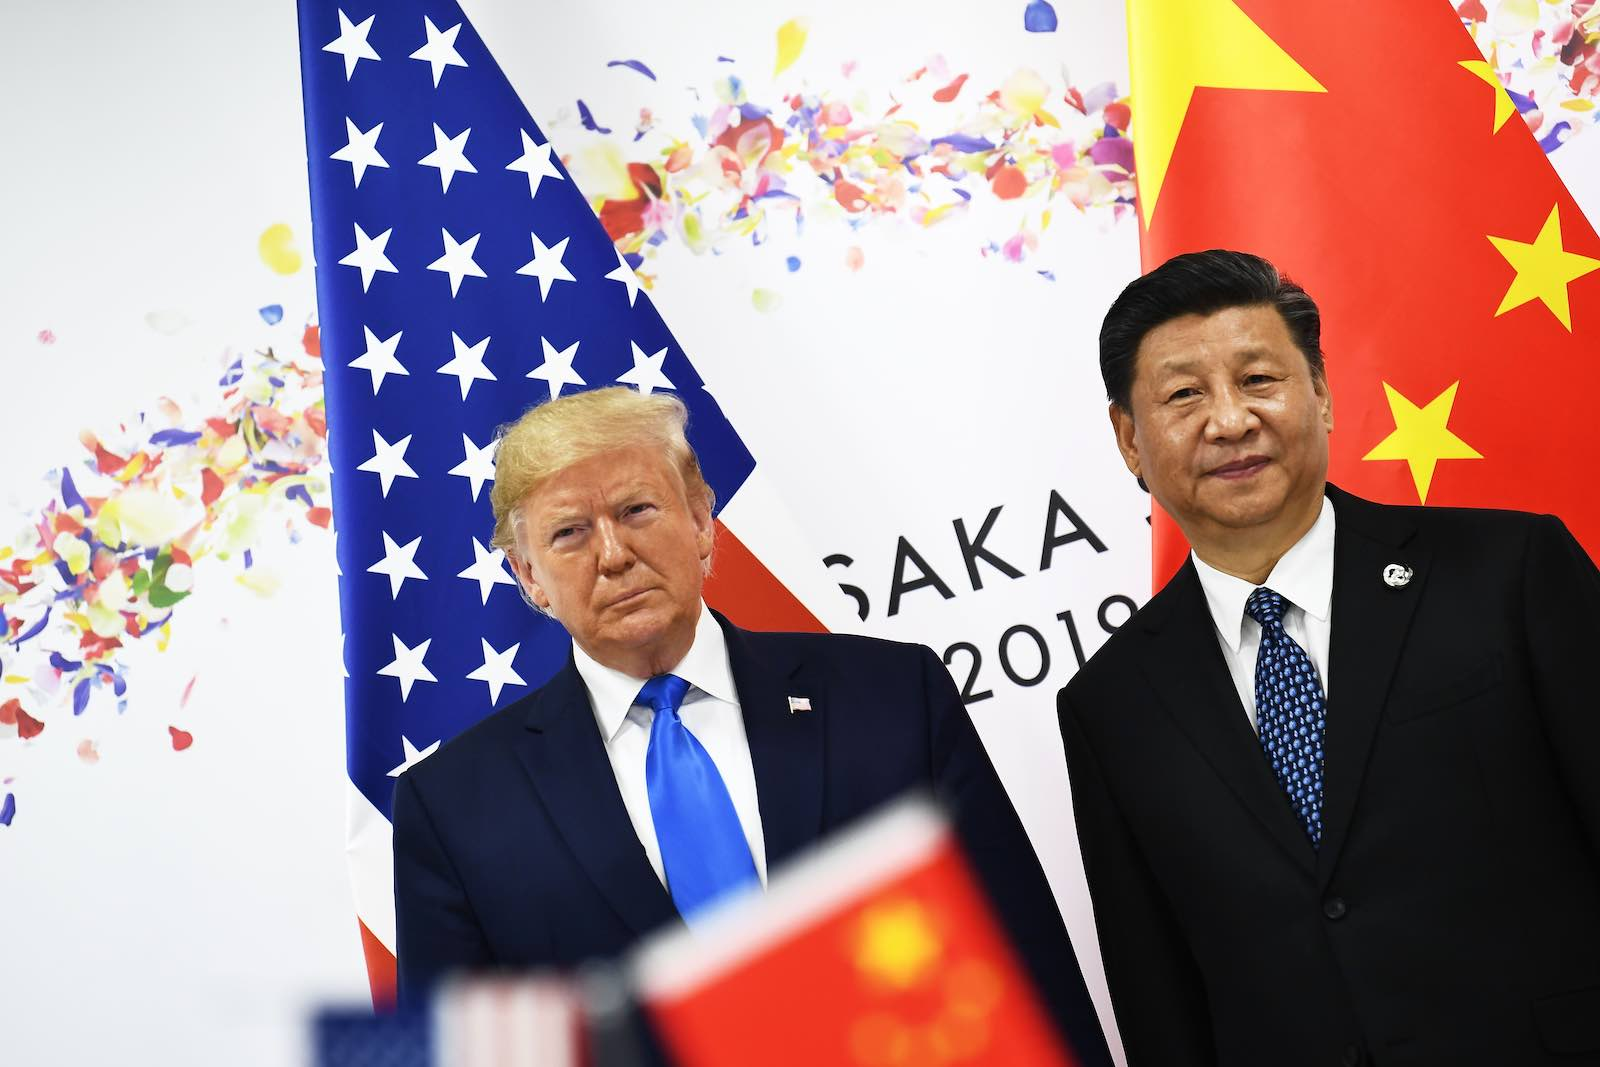 Donald Trump and Xi Jinping during talks at the Osaka G20 in Japan (Photo: Brendan Smialowski via Getty)